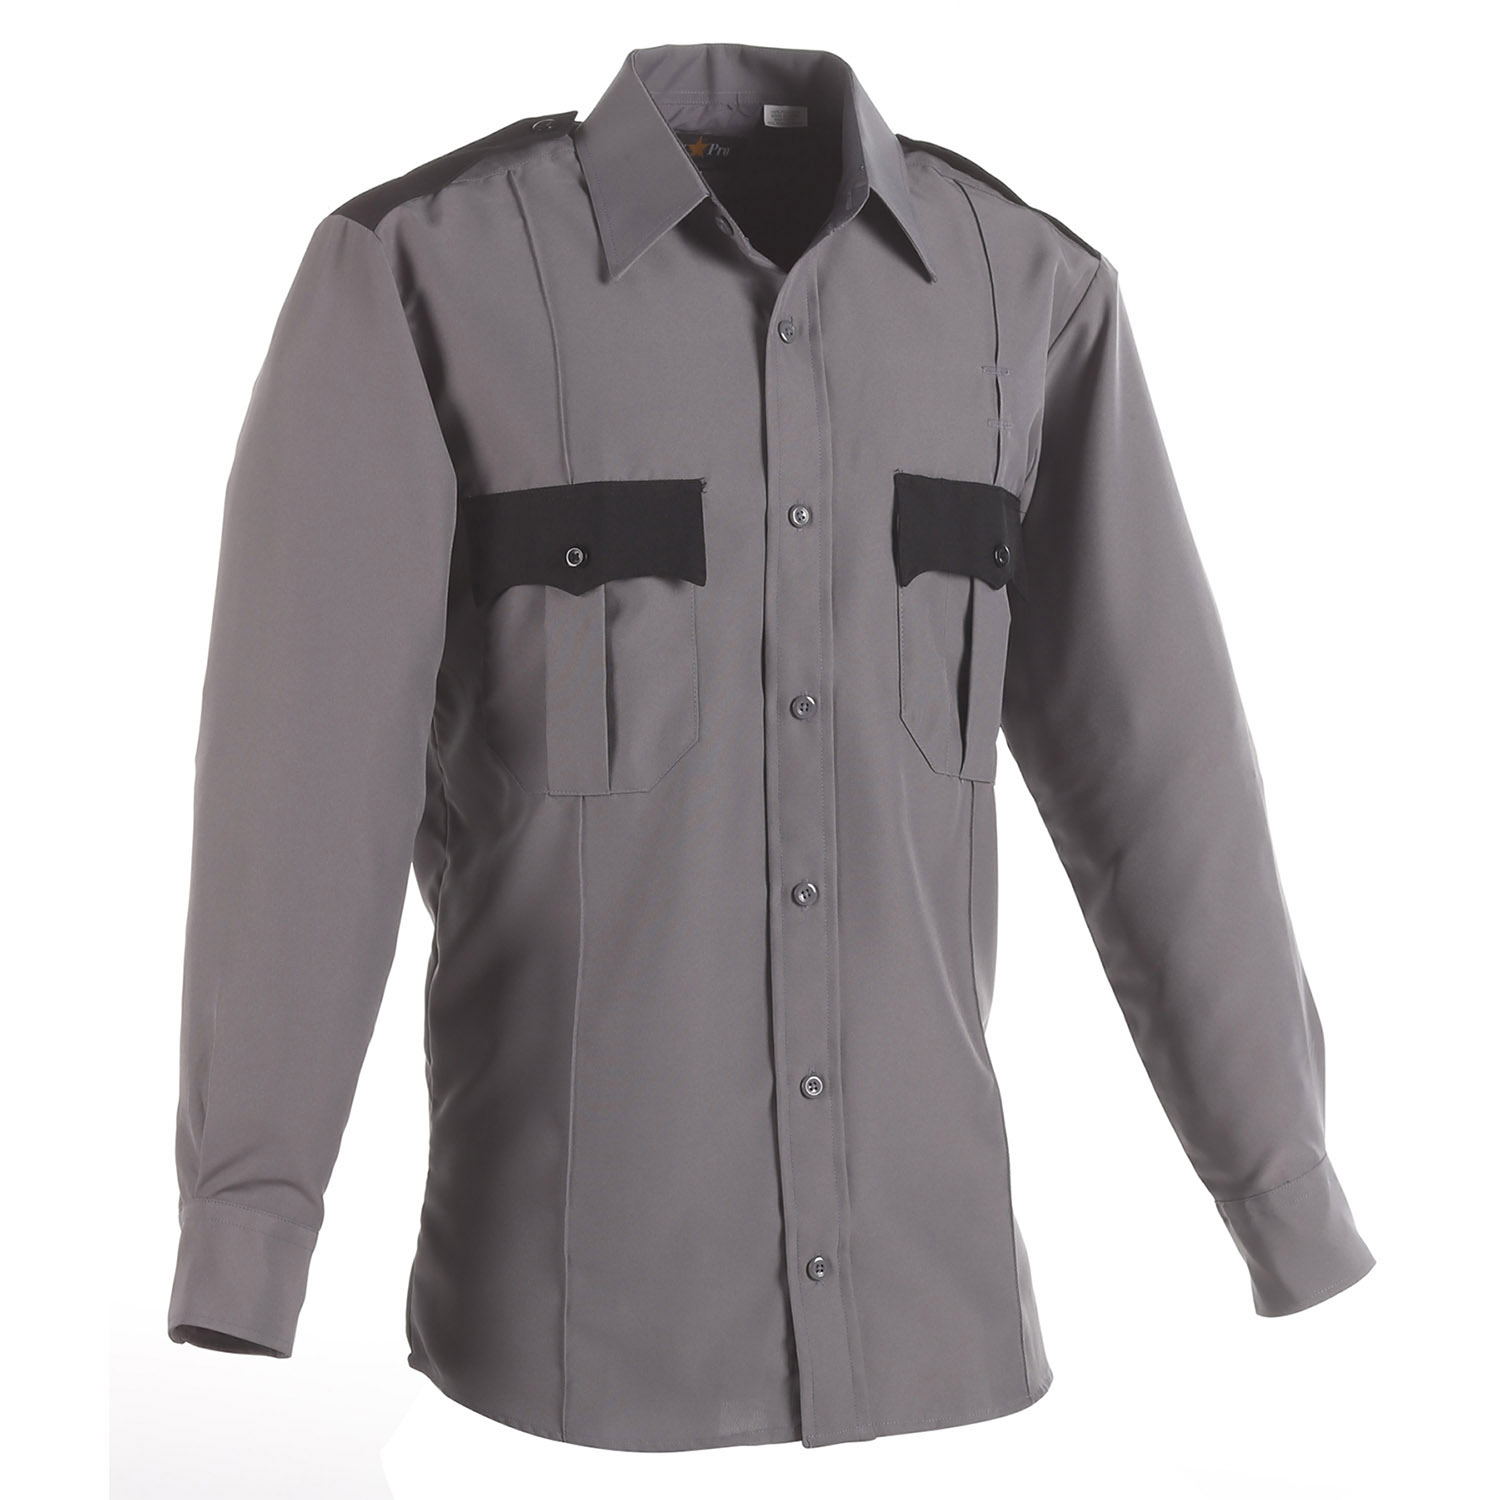 LawPro Polyester Two-Tone Long Sleeve Shirt